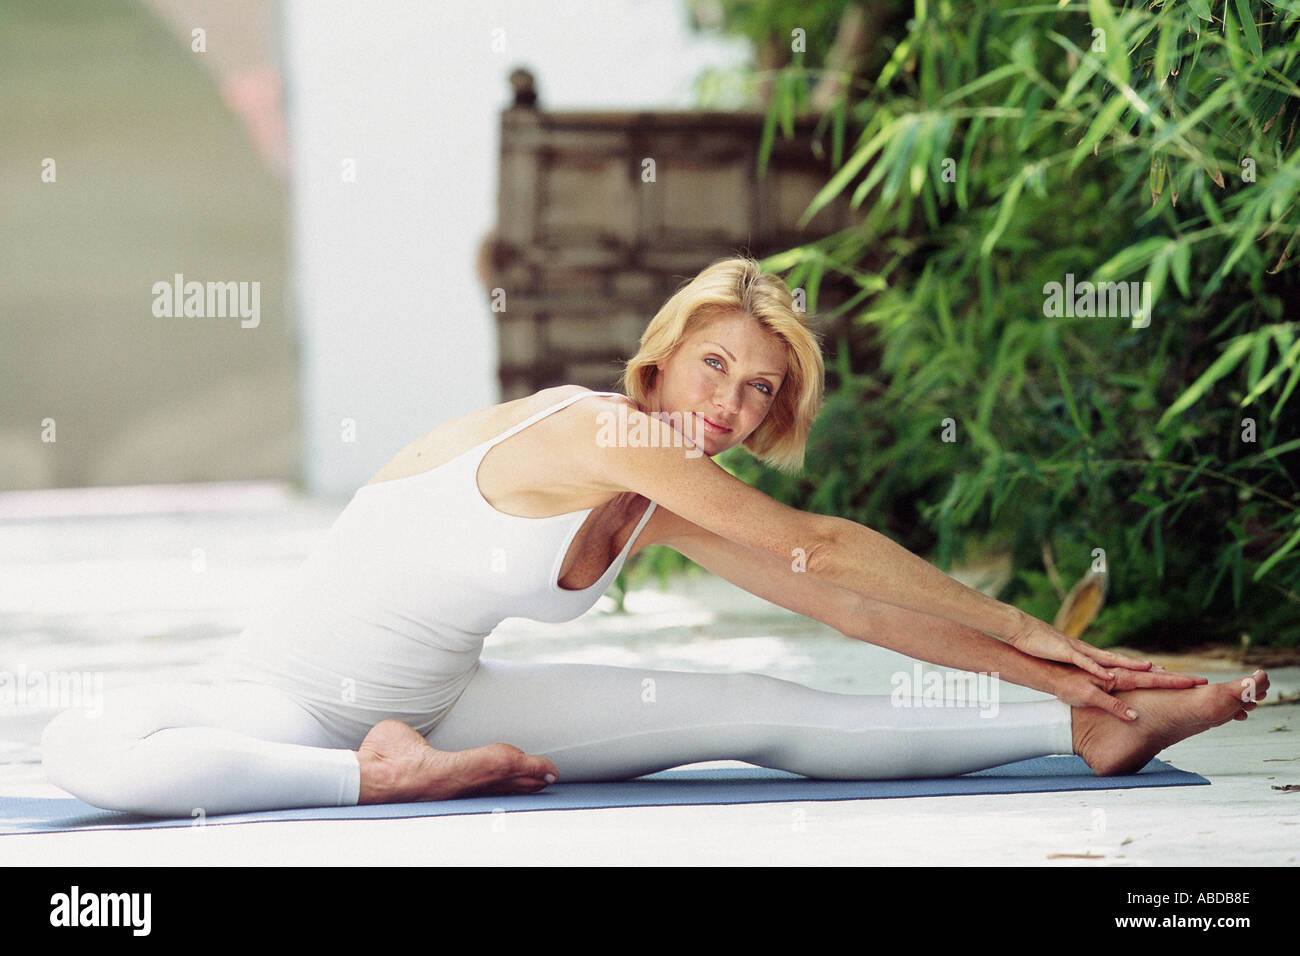 Woman doing yoga outdoors Stock Photo